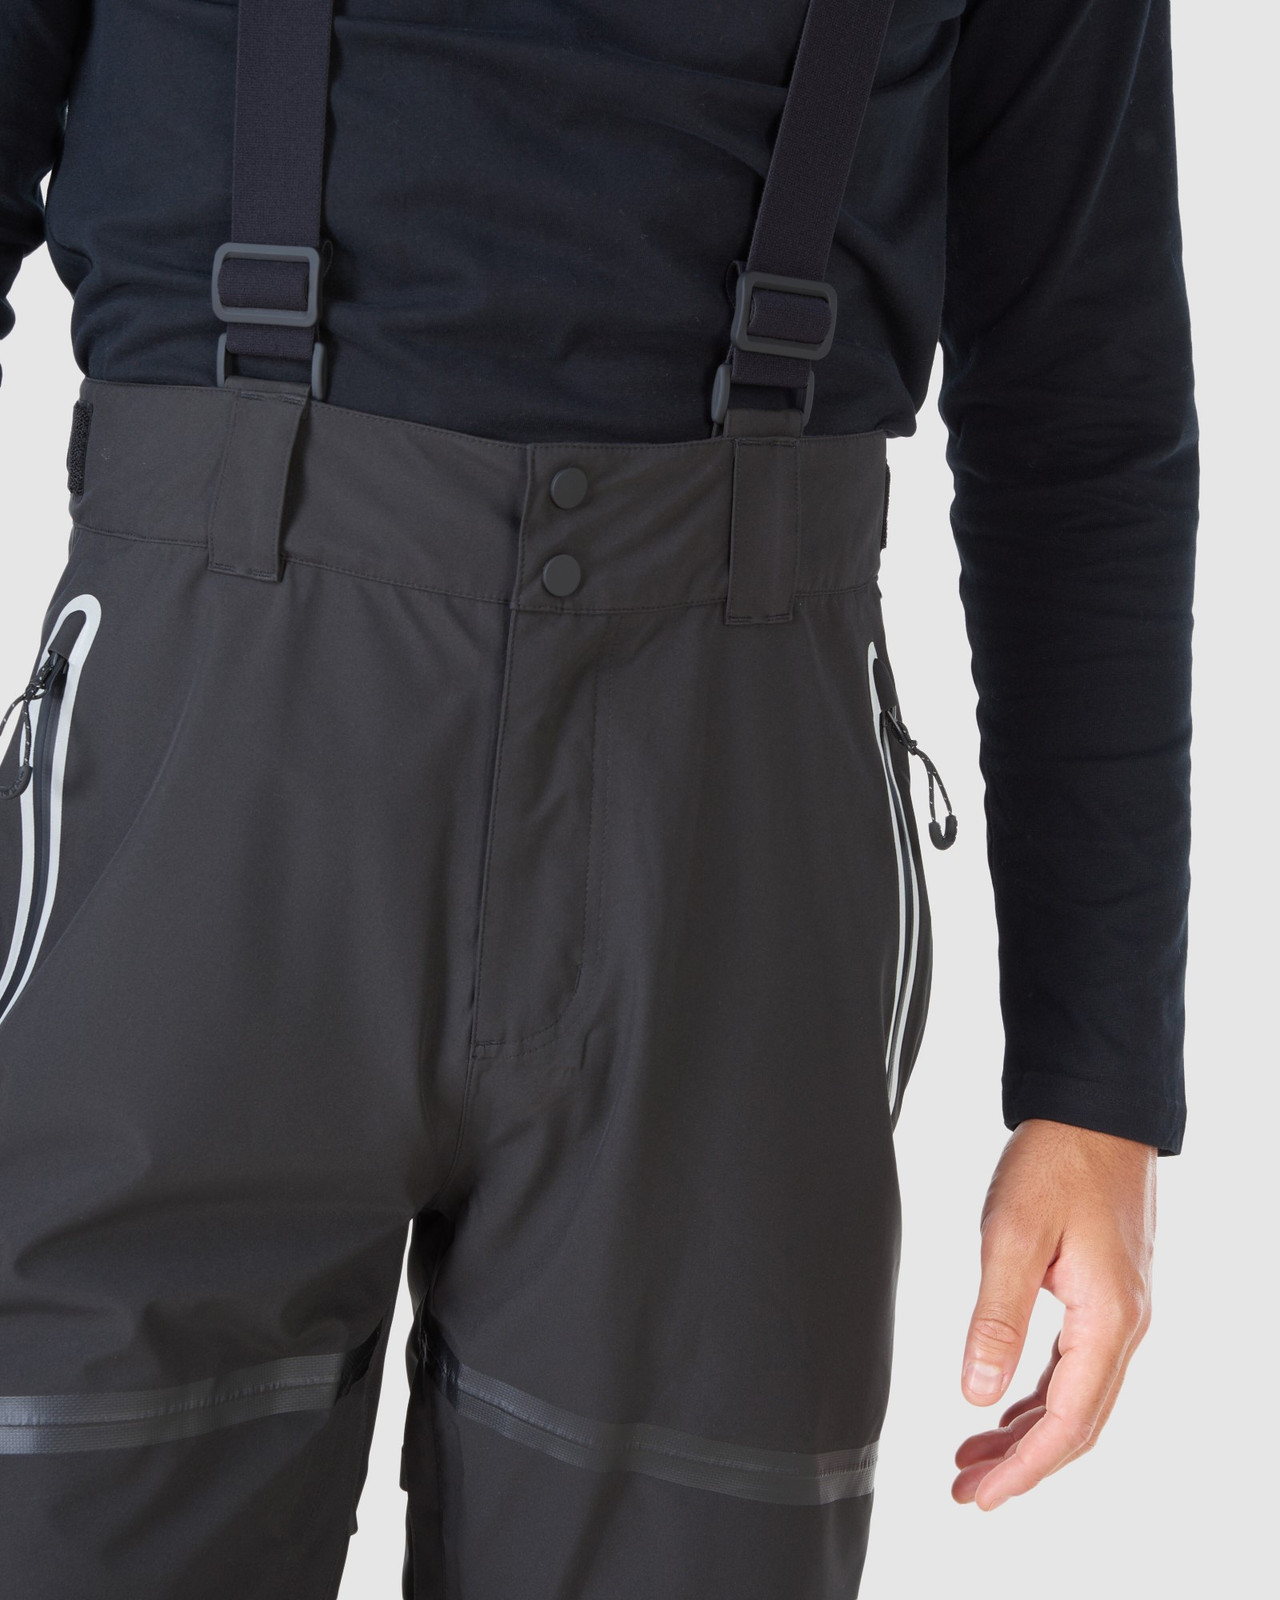 Superdry Mens EXPEDITION SHELL PANT Black Snow Pants 11